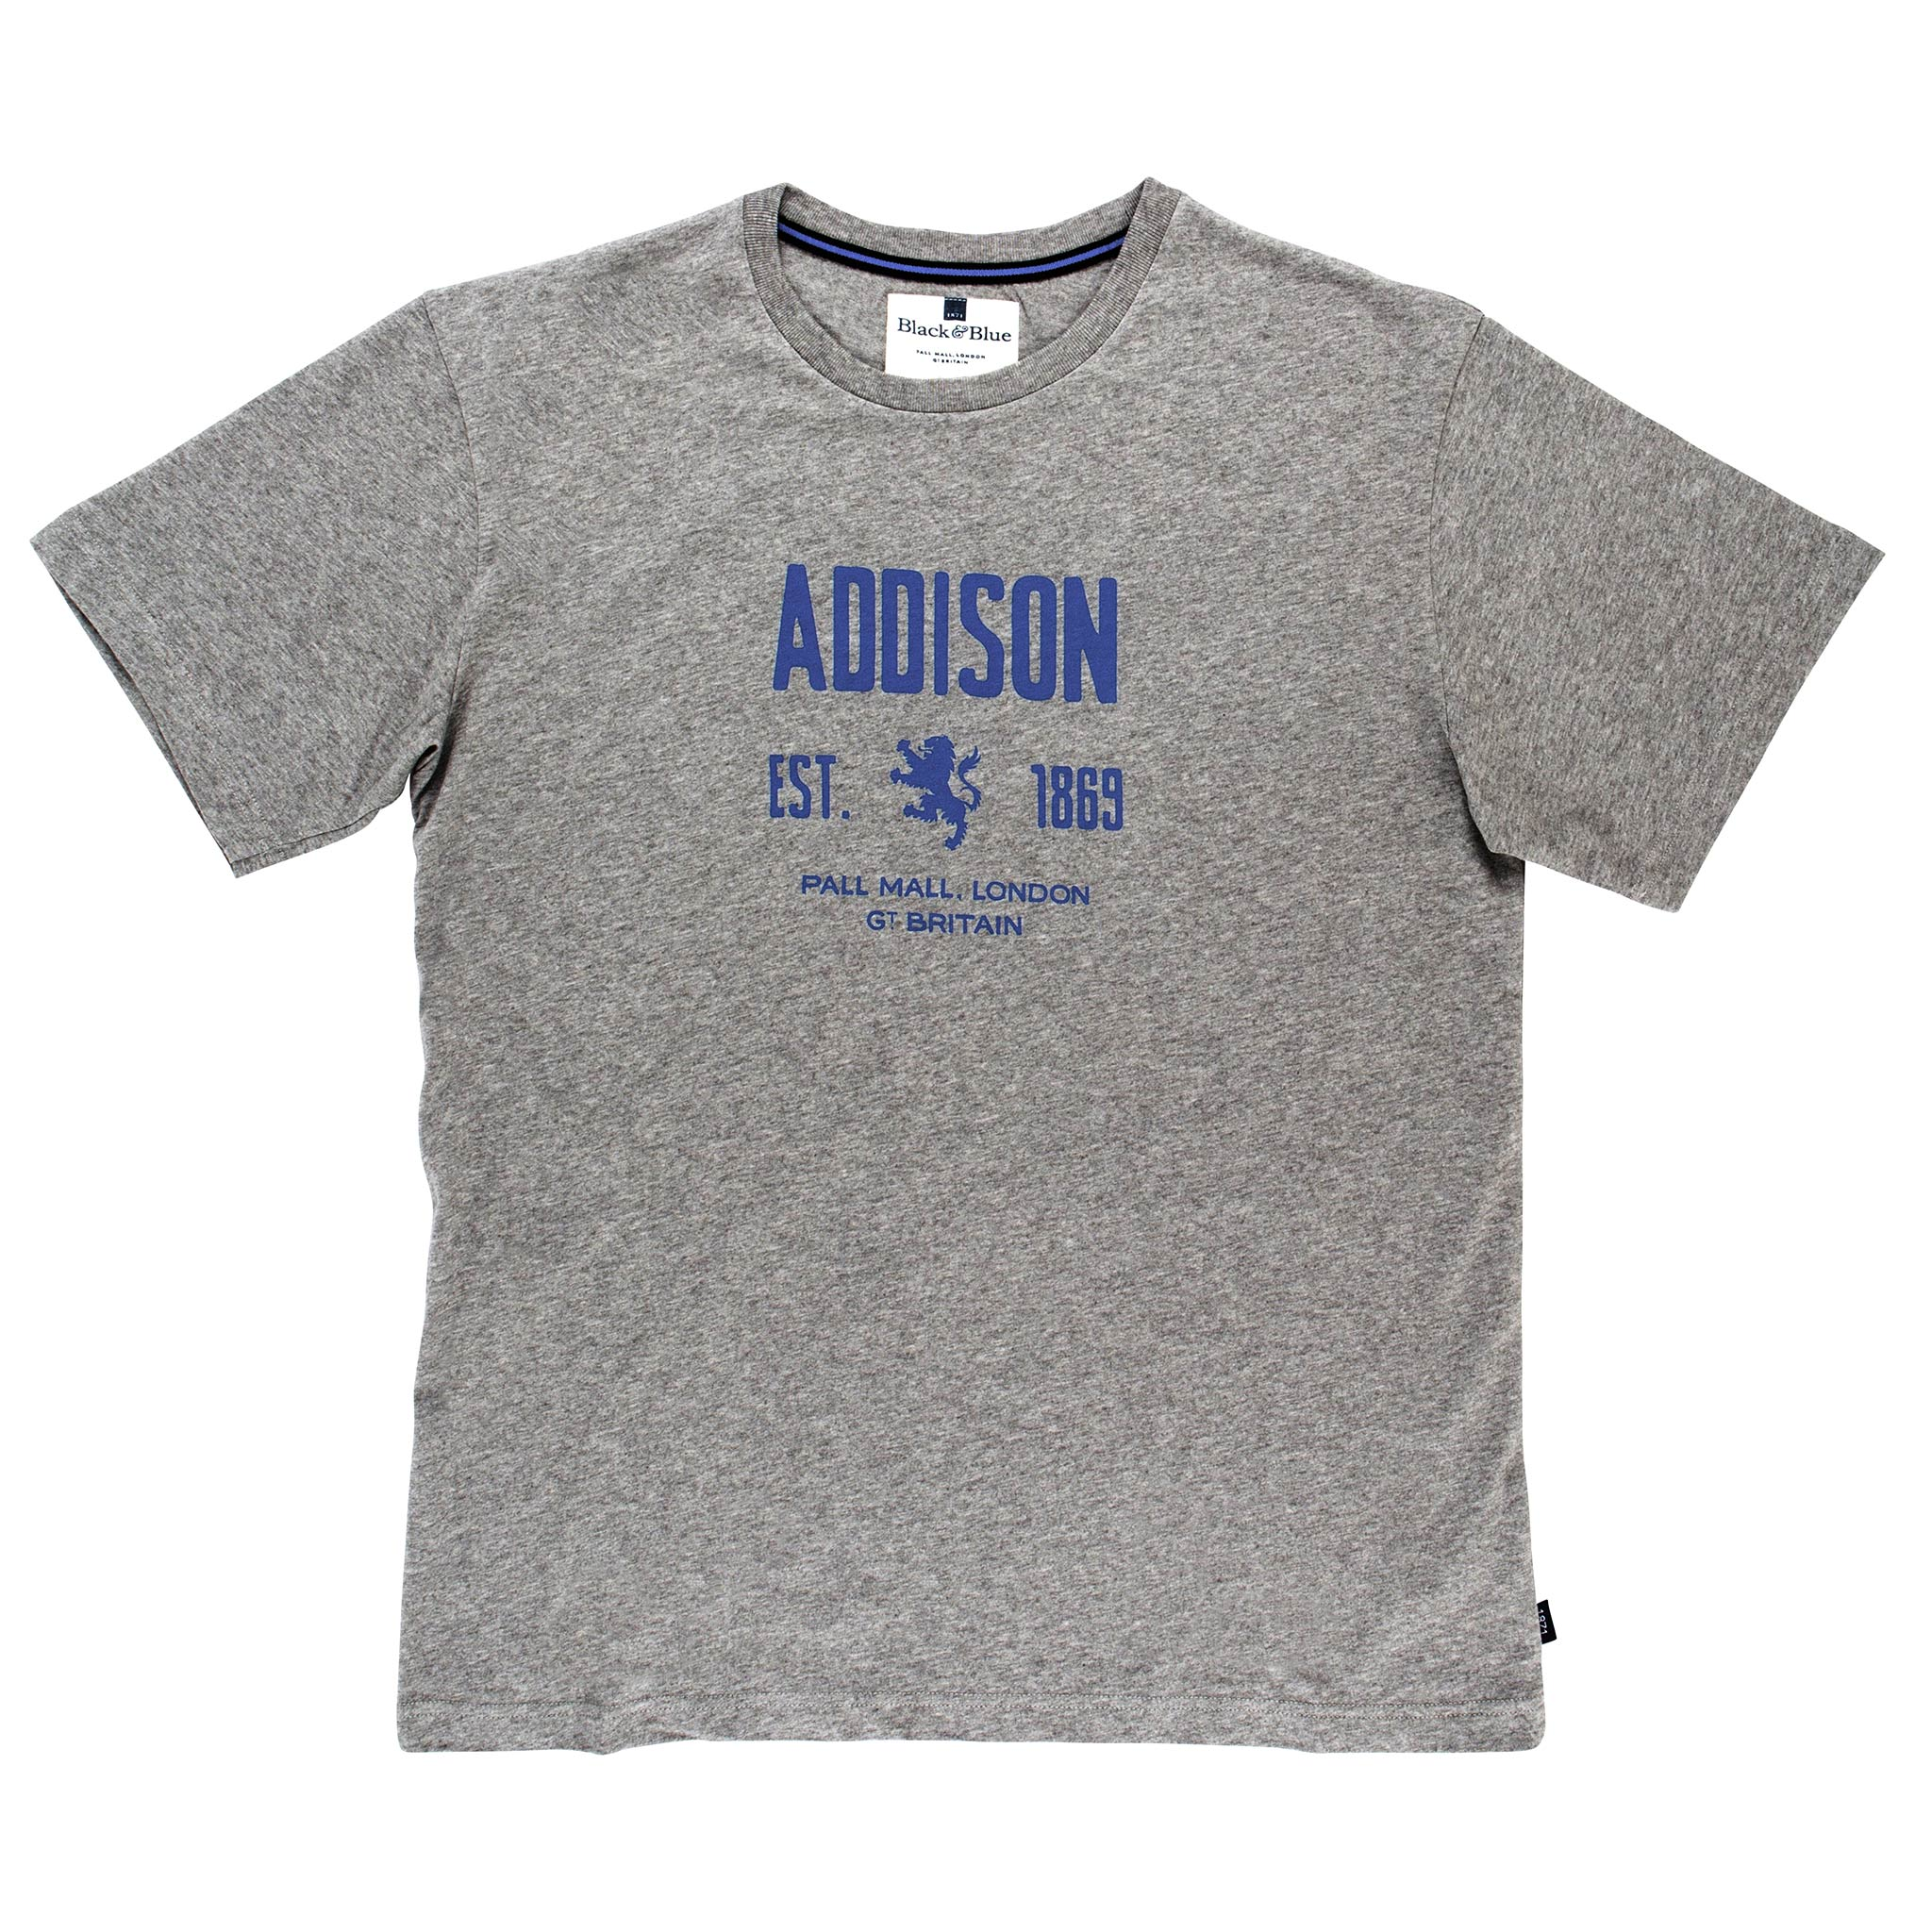 Addison Grey T-shirt